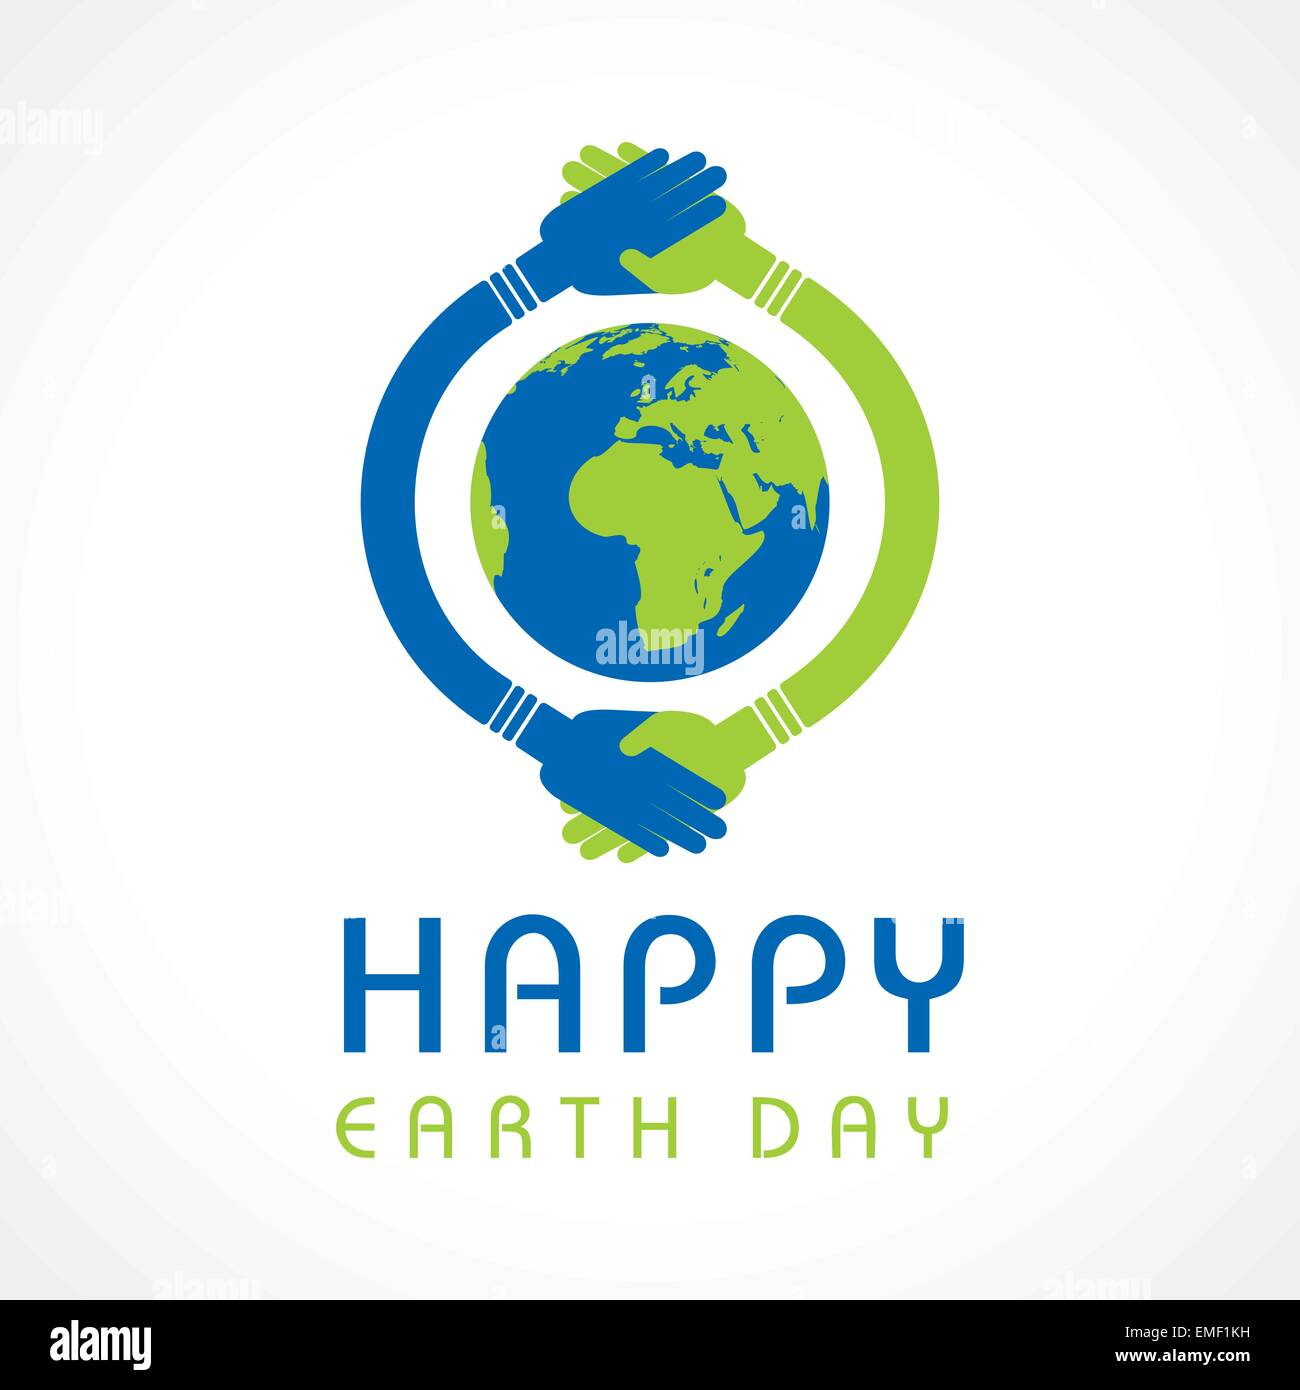 Creative Happy Earth Day Greeting stock vector - Stock Image